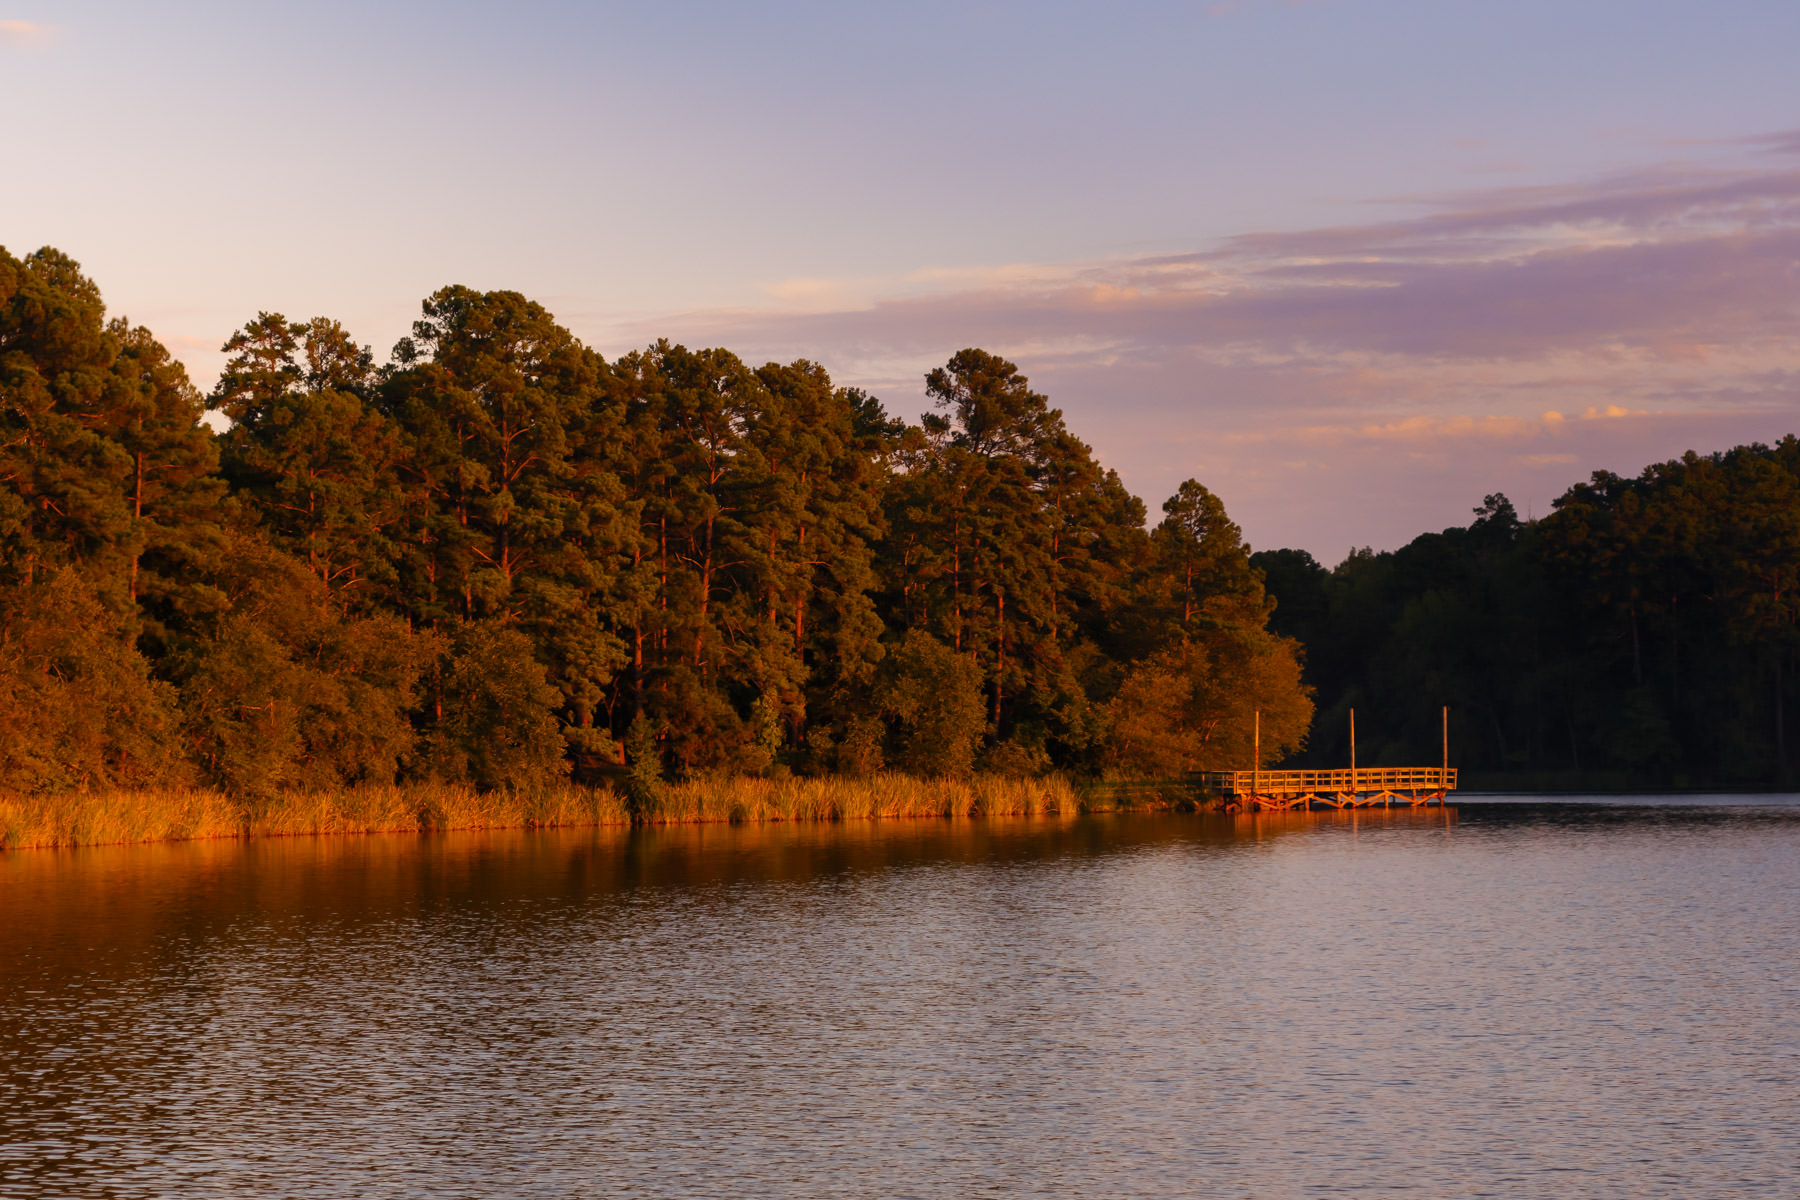 The late evening sun illuminates pine trees along the shoreline of the lake at Tyler State Park, Texas.